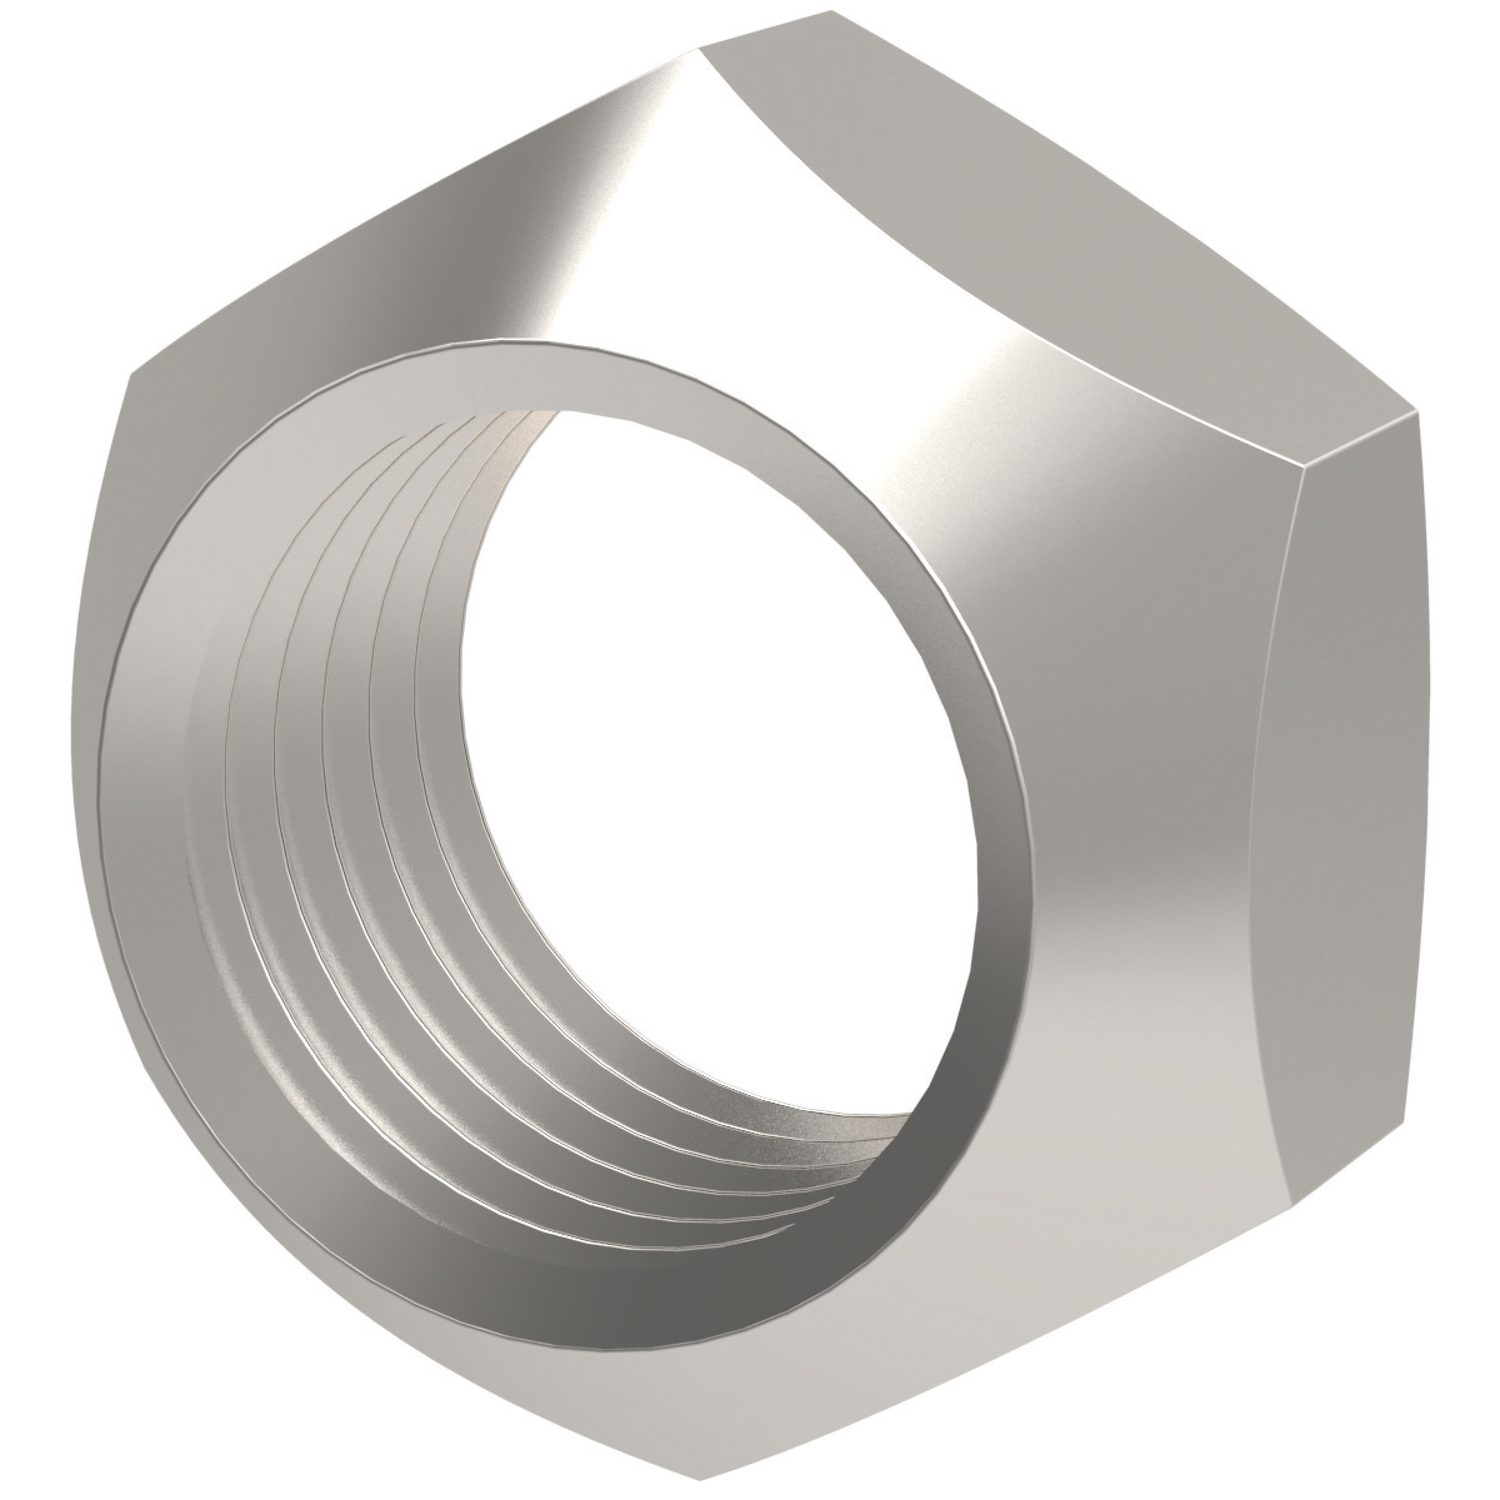 Stover Nuts Stainless steel A4. Reusable, resistant to shocks, vibrations and dynamic loads.